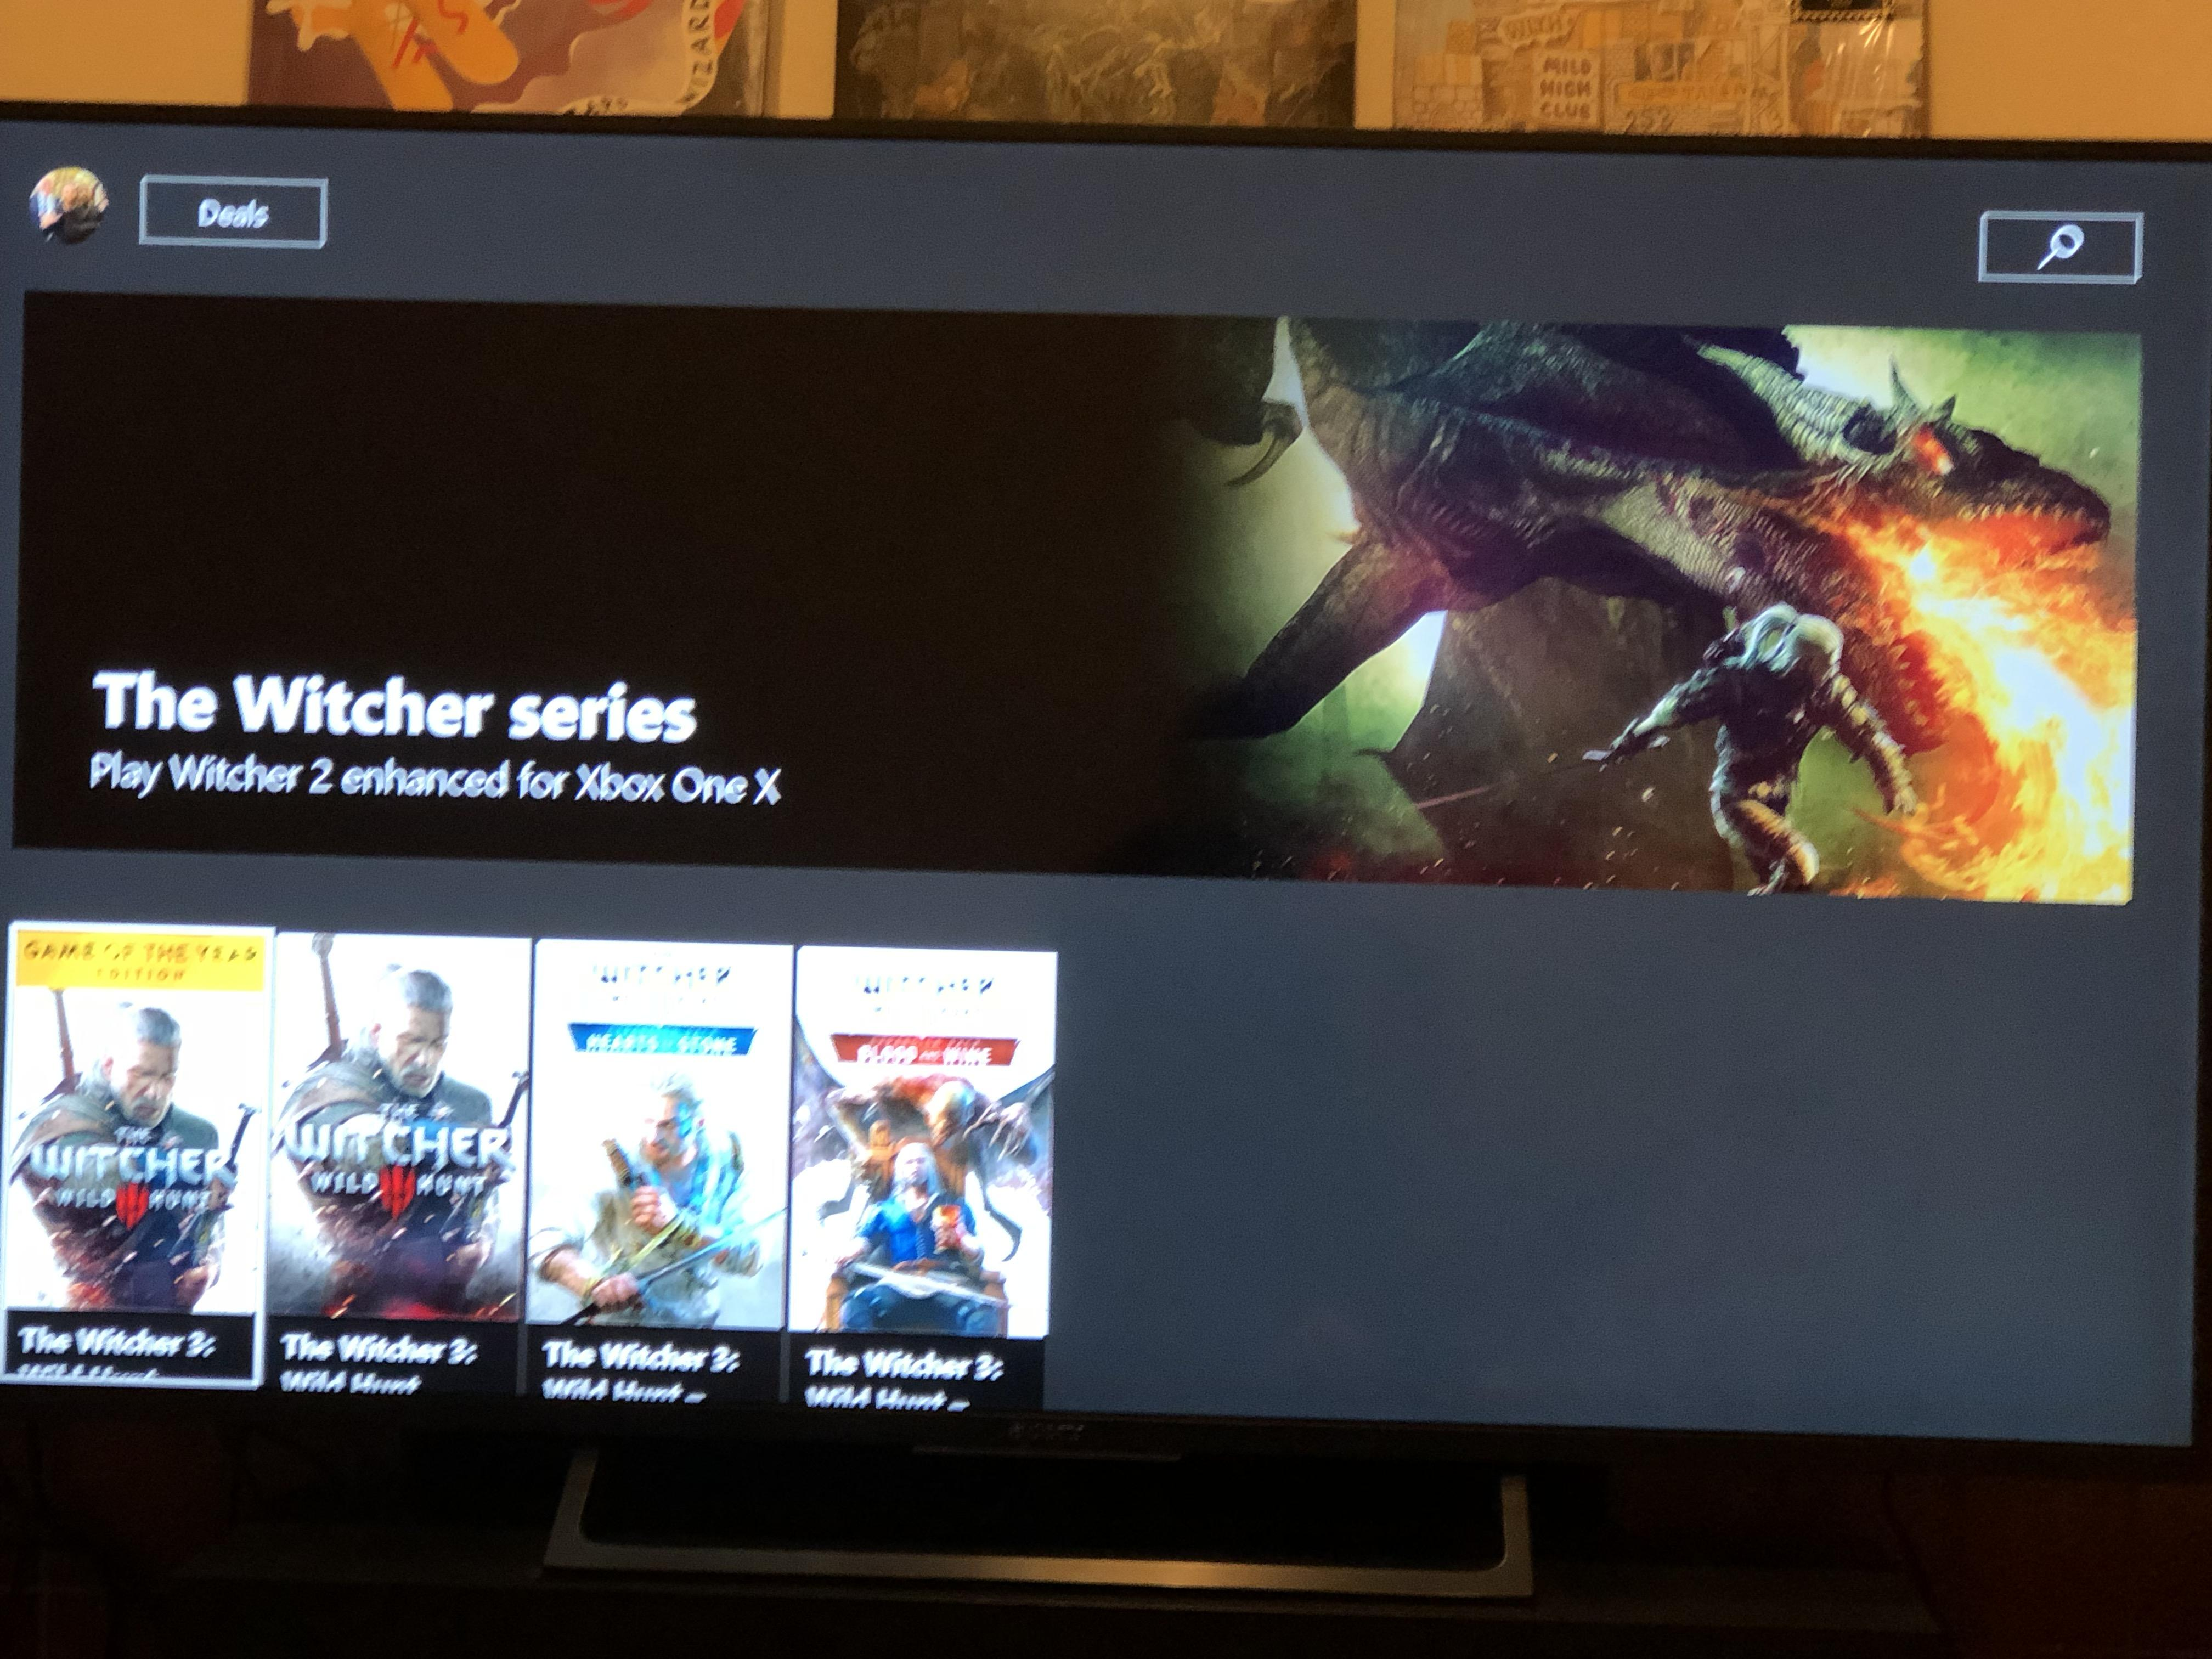 The Witcher 2 Assassins Of Kings To Get Xbox One X Enhanced